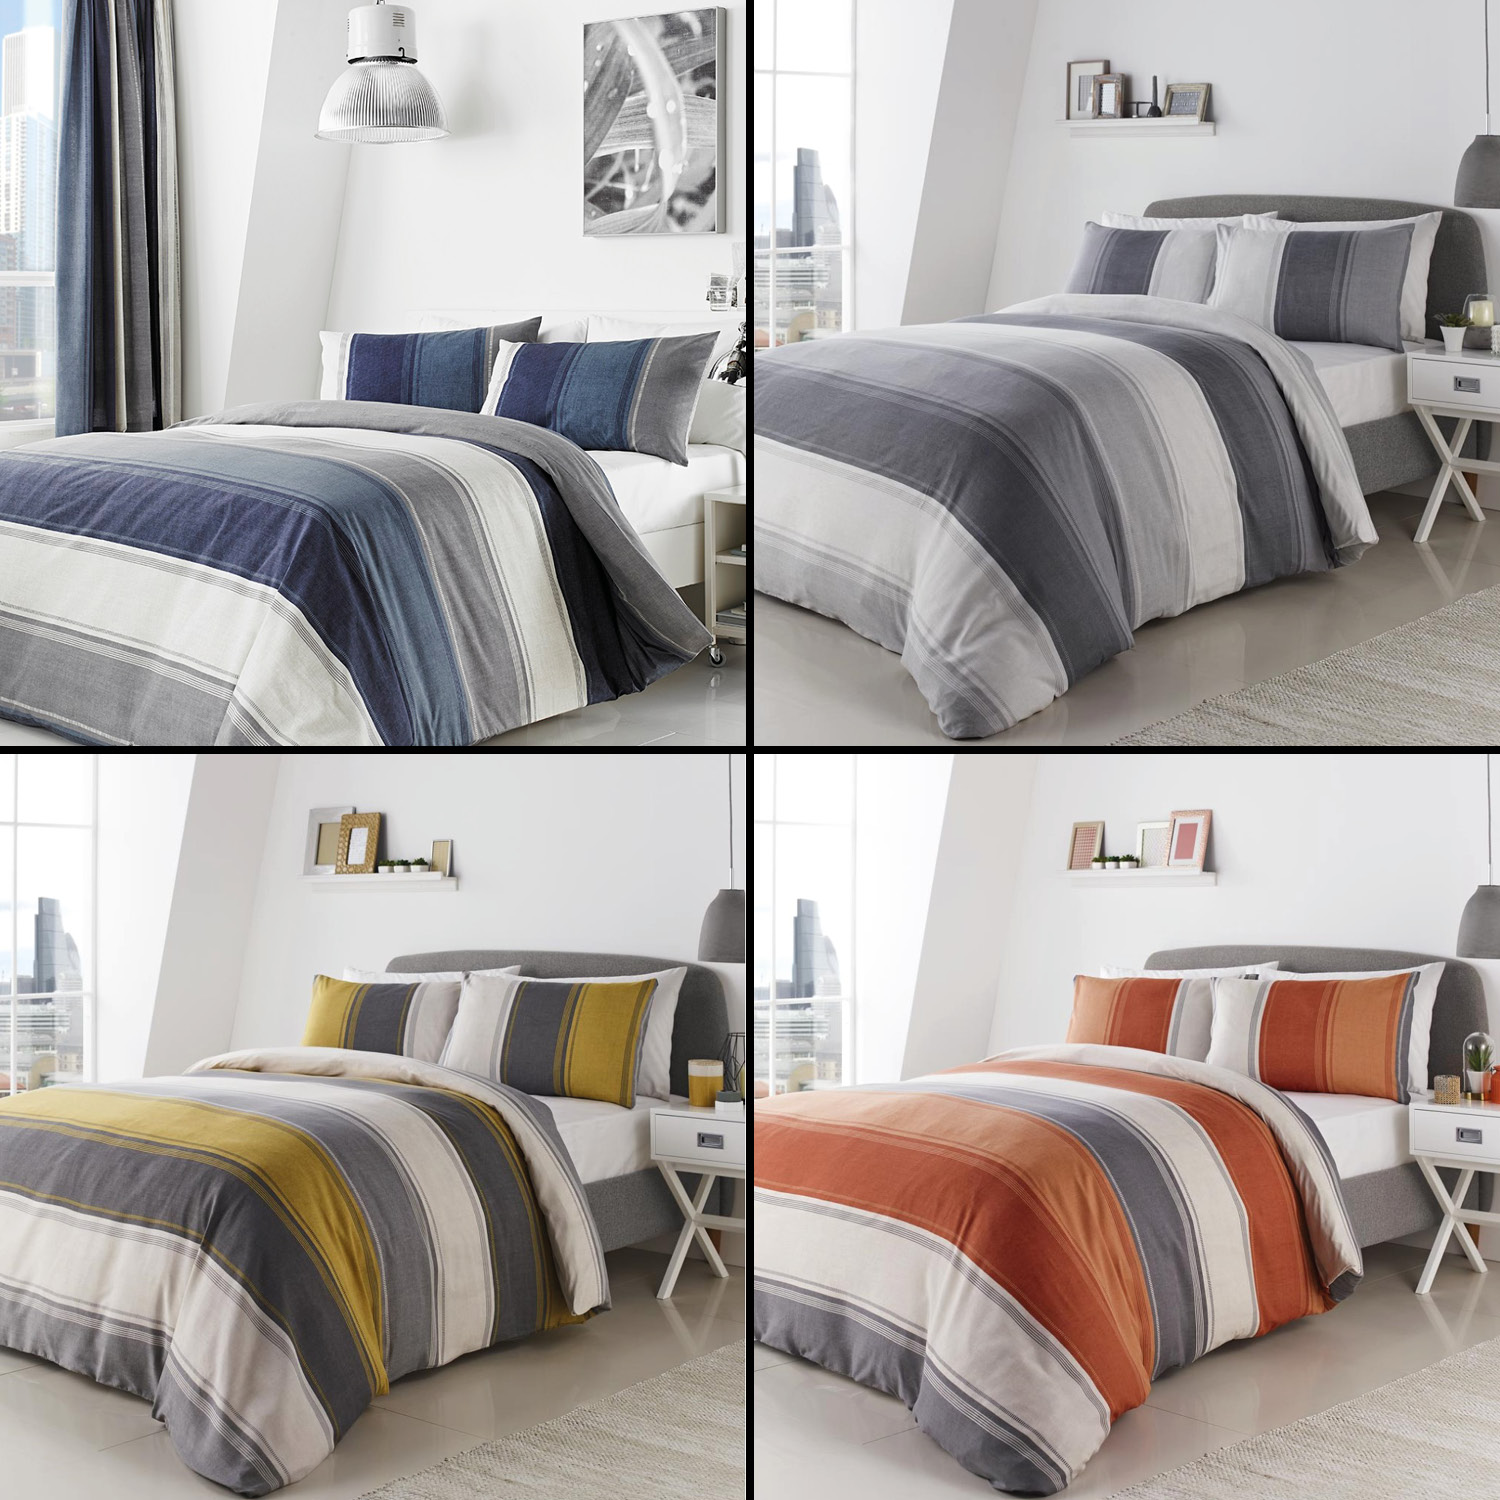 Betley Stripe Duvet Quilt Cover Bedding Set Blue Multi Orange Grey Yellow Ebay